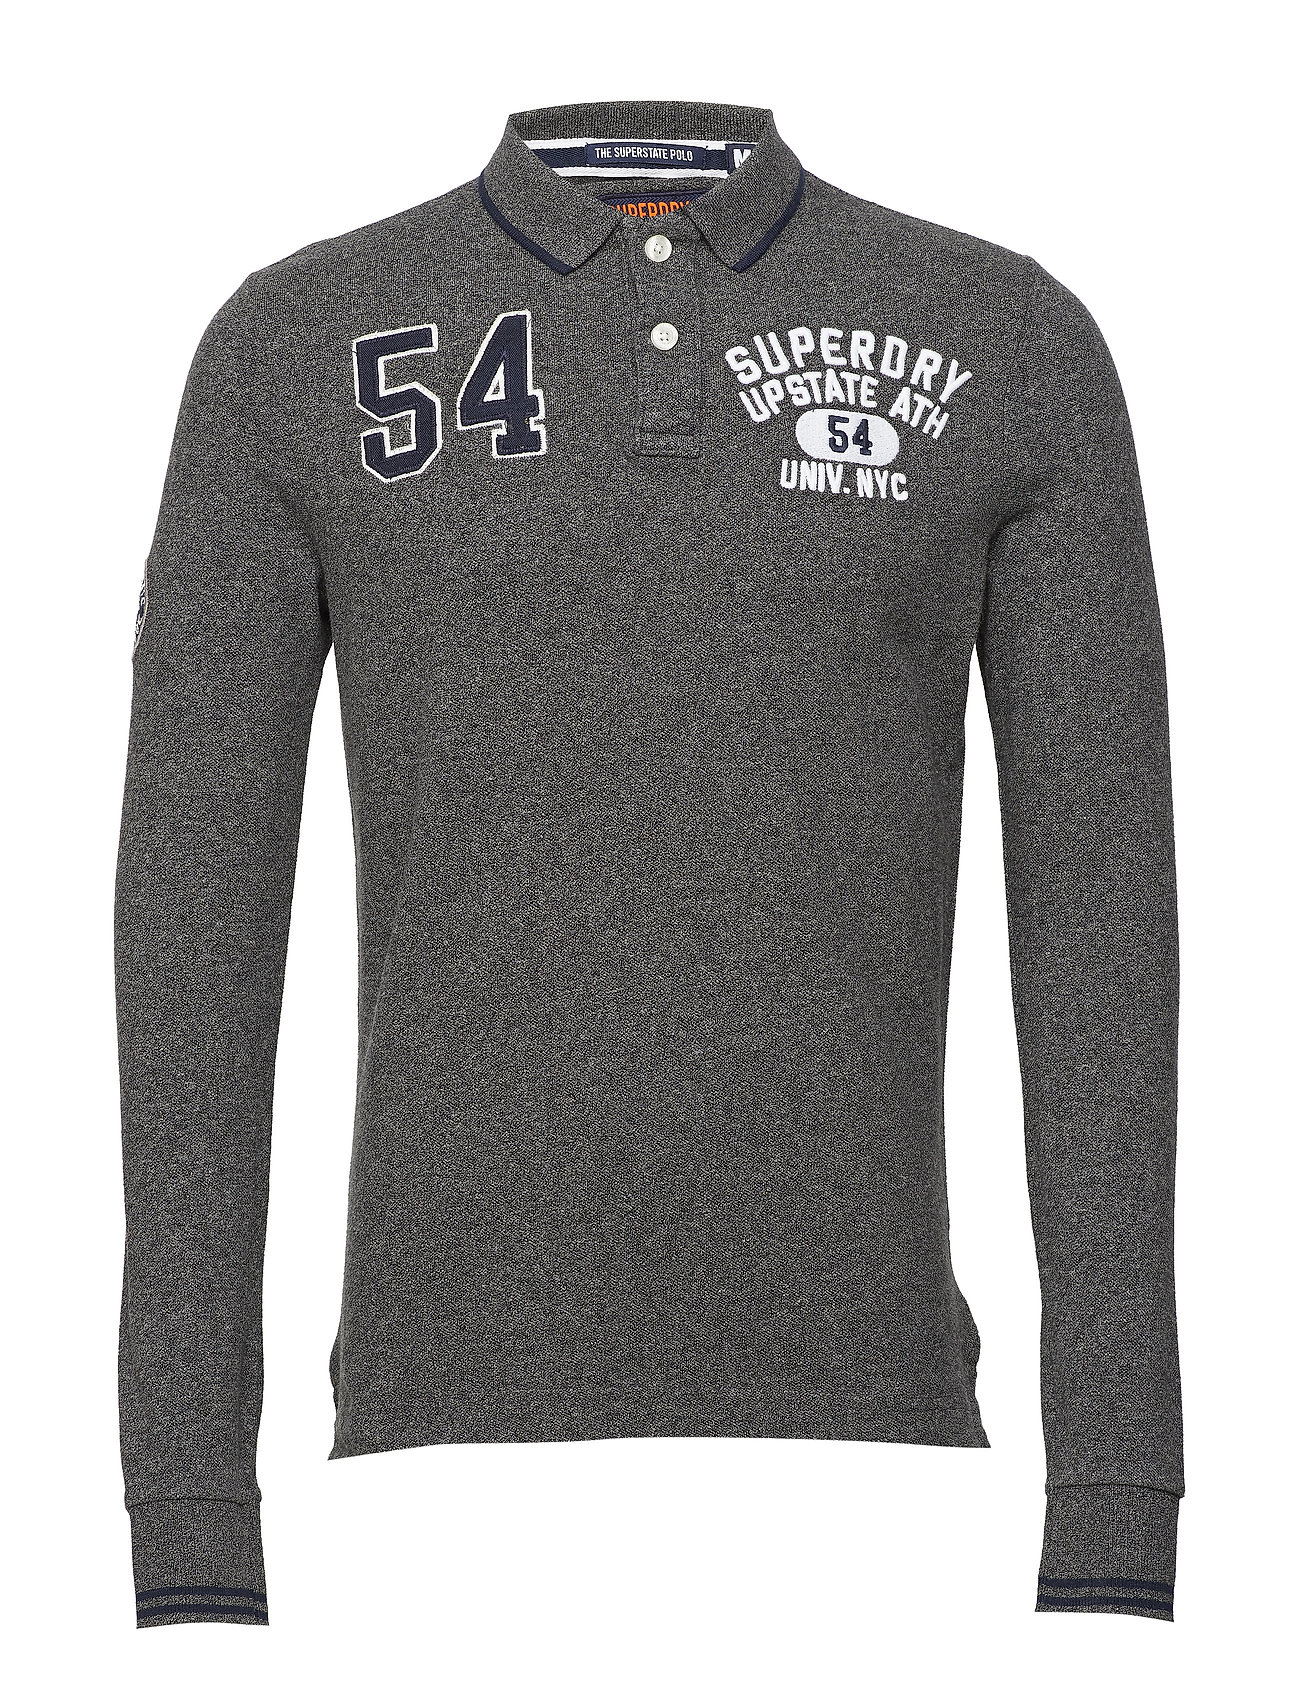 Superdry CLASSIC SUPERSTATE L/S POLO - CINDER GREY GRIT